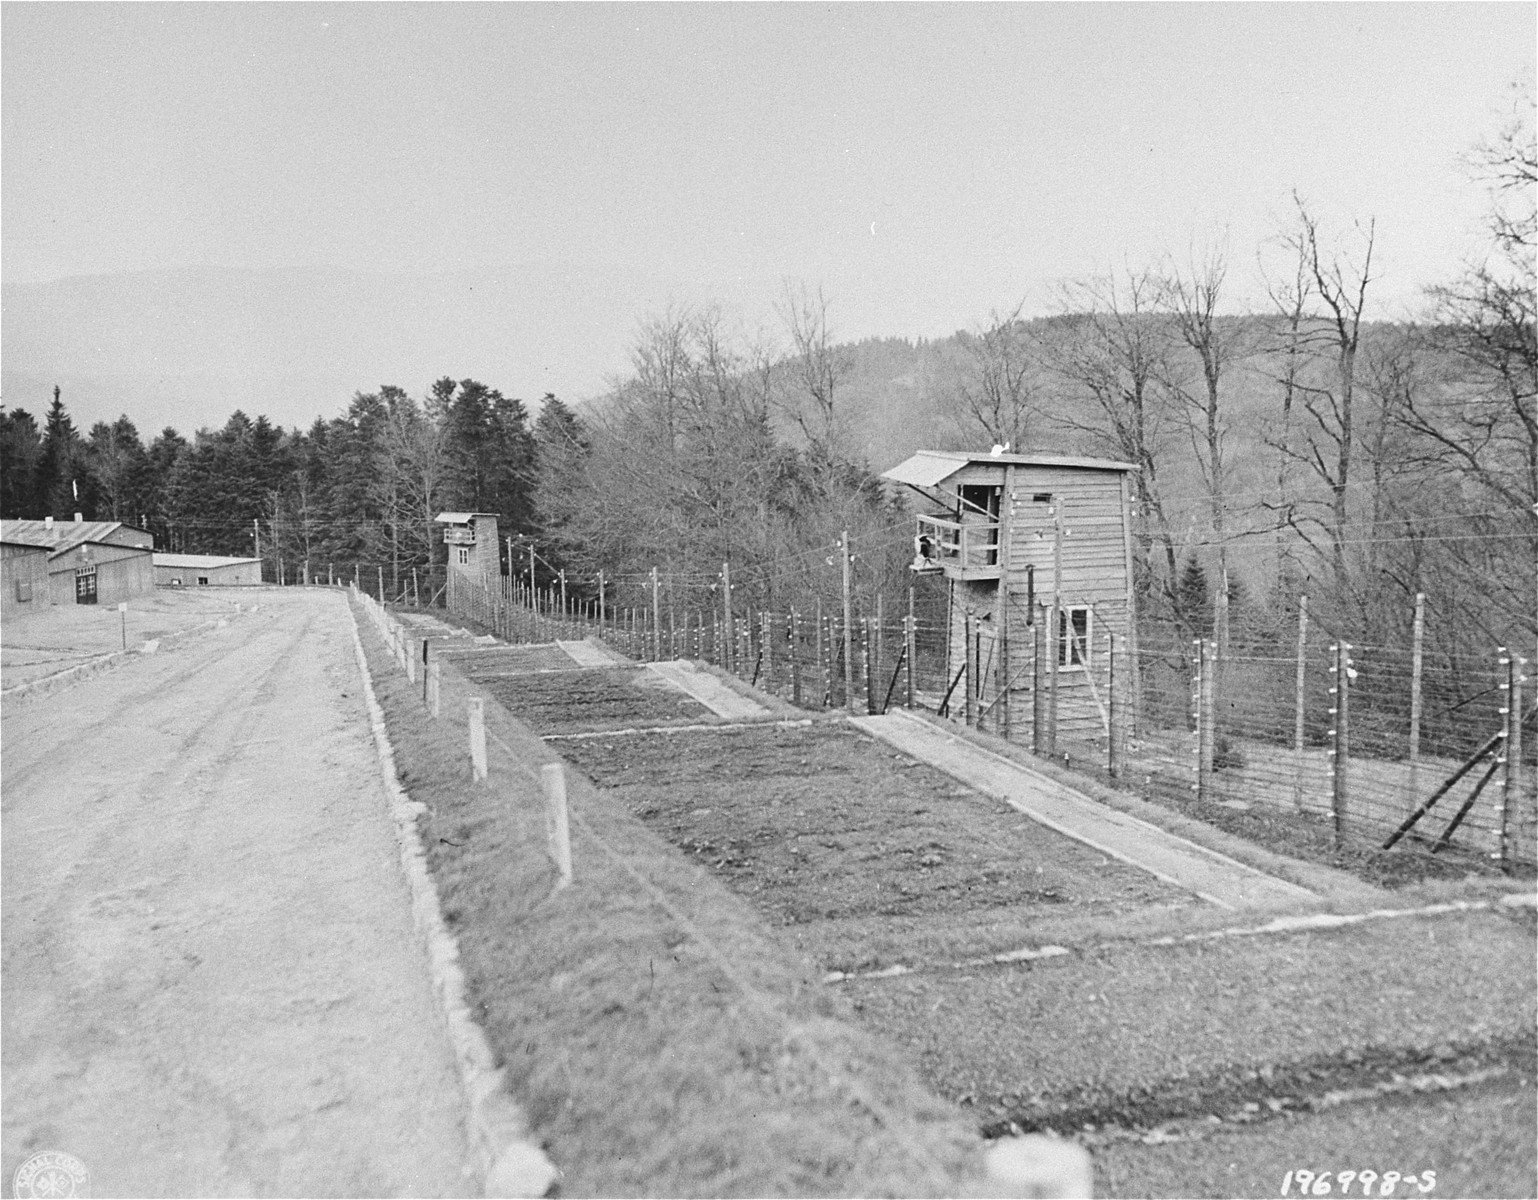 View of a section of the perimeter of the Natzweiler-Struthof concentration camp.